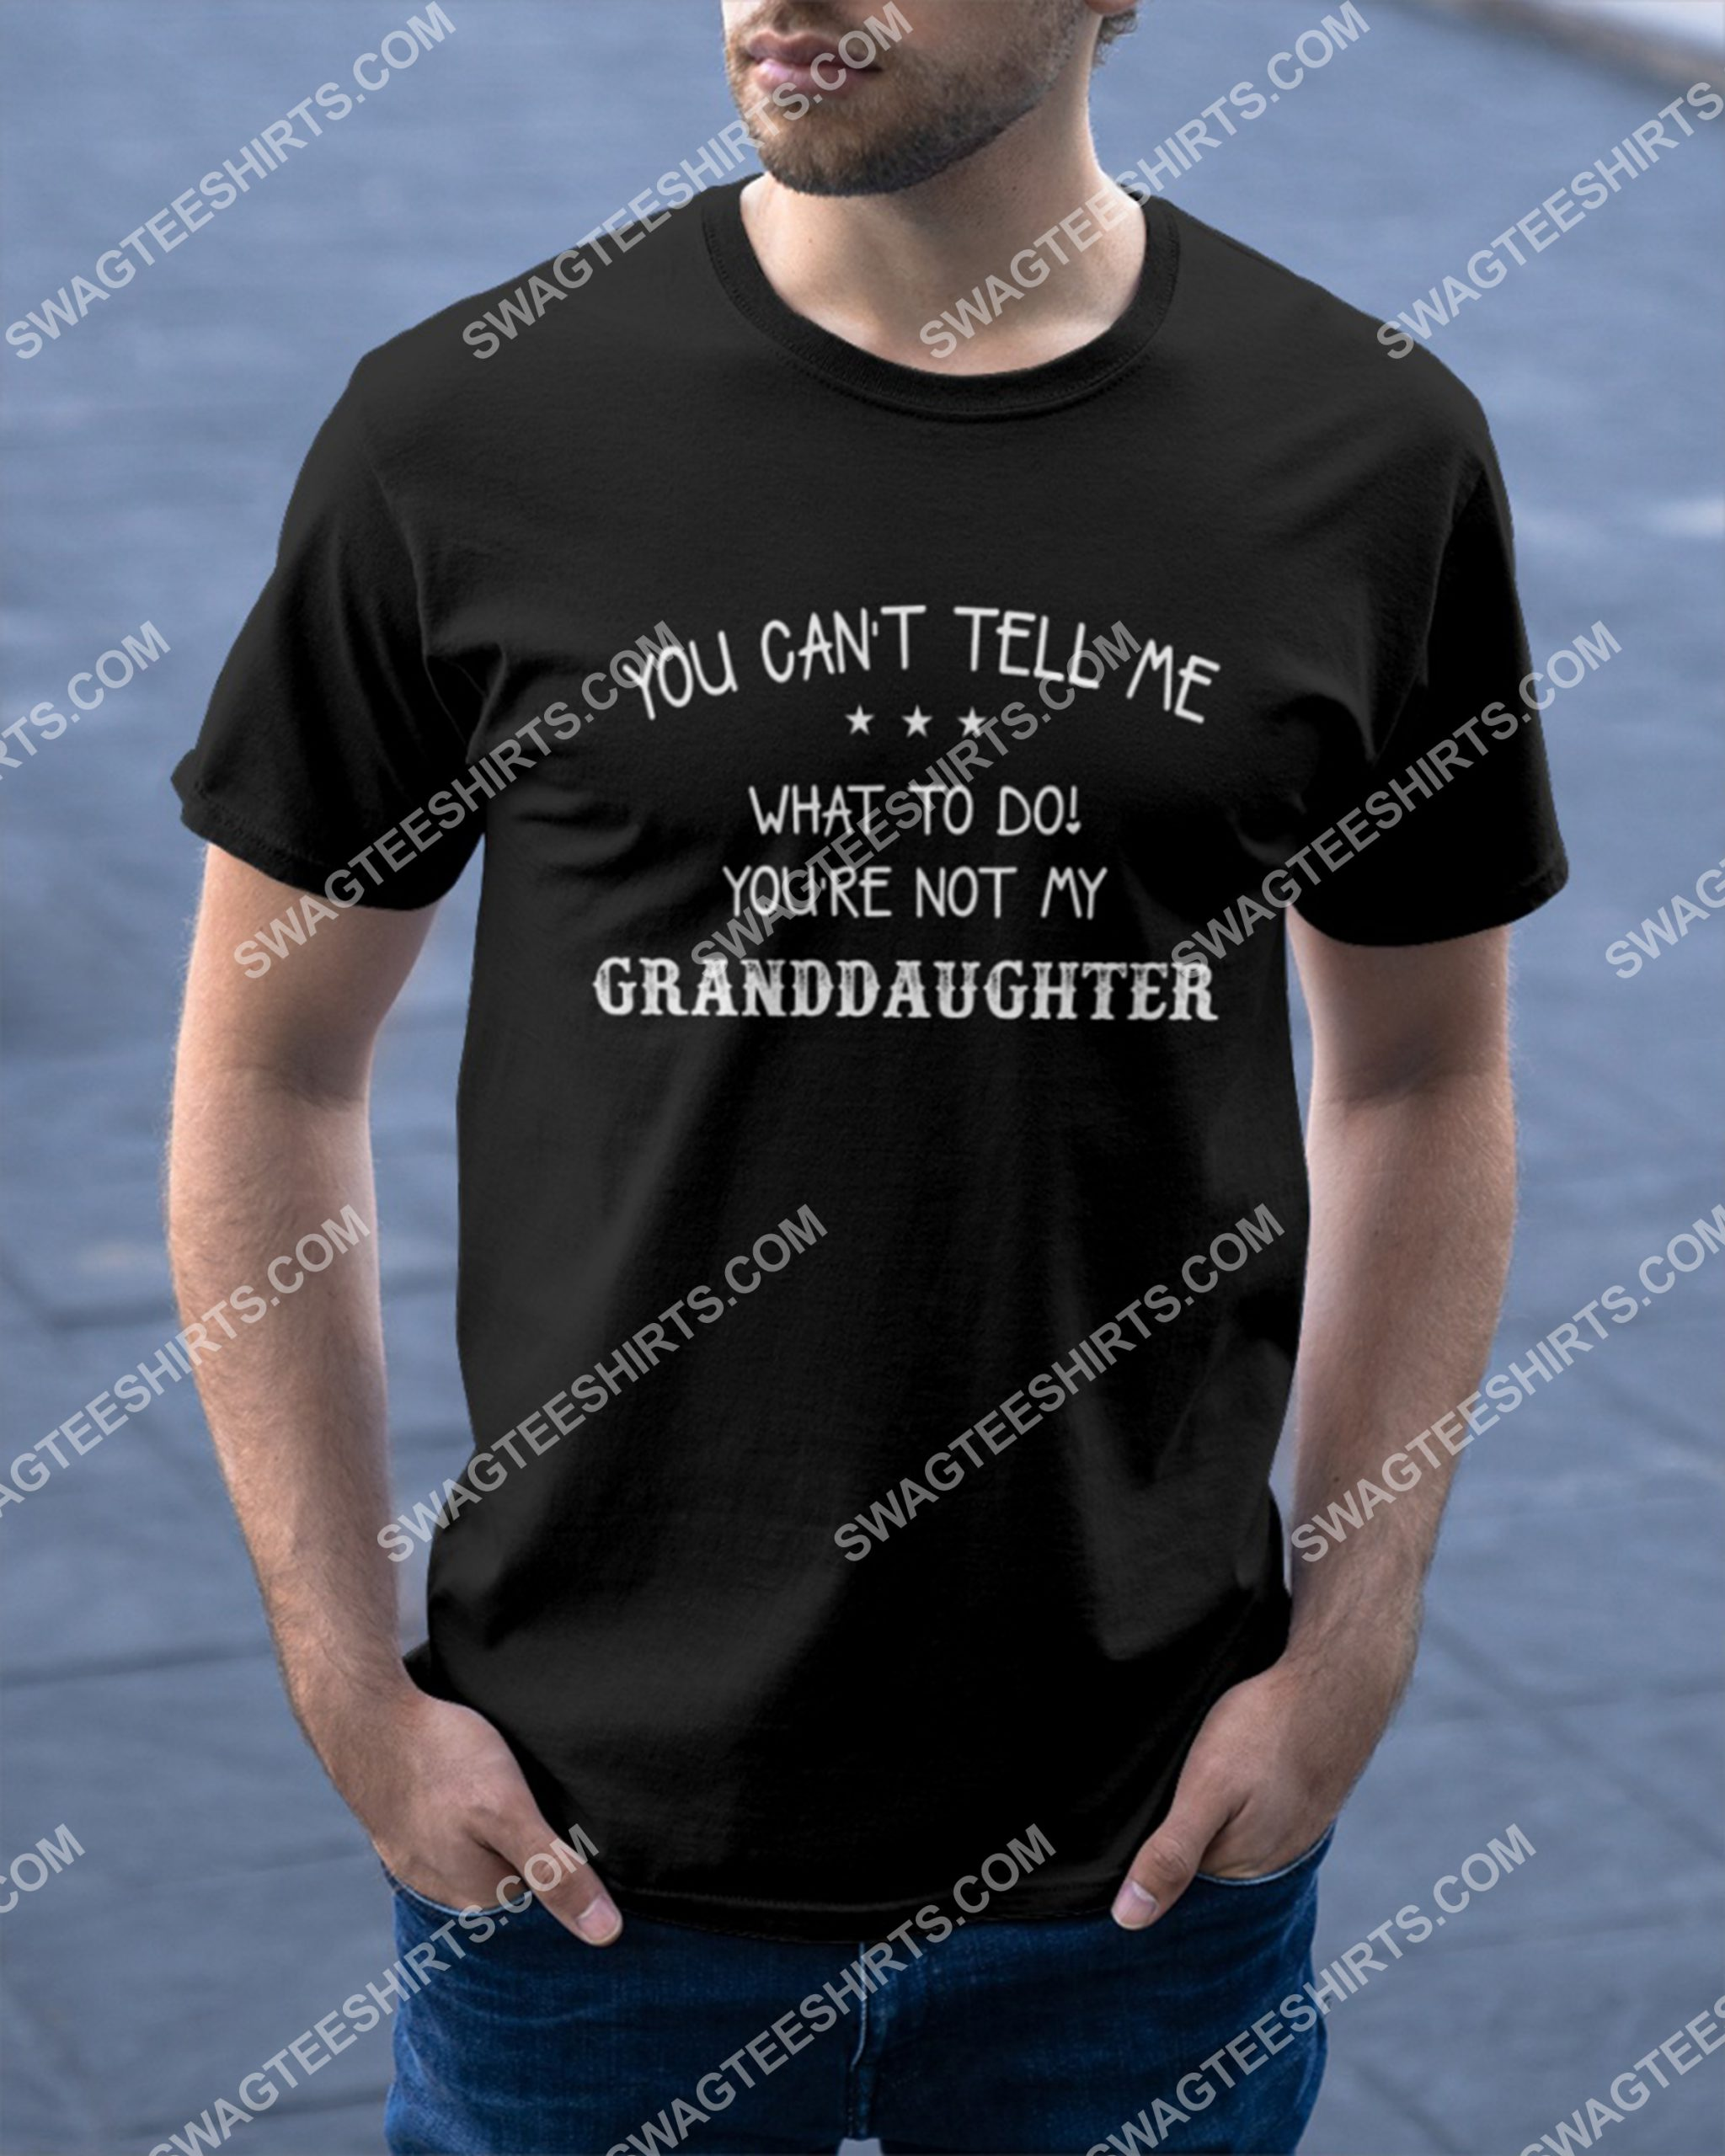 you can't tell me what to do you're not my granddaughter shirt 2(1)